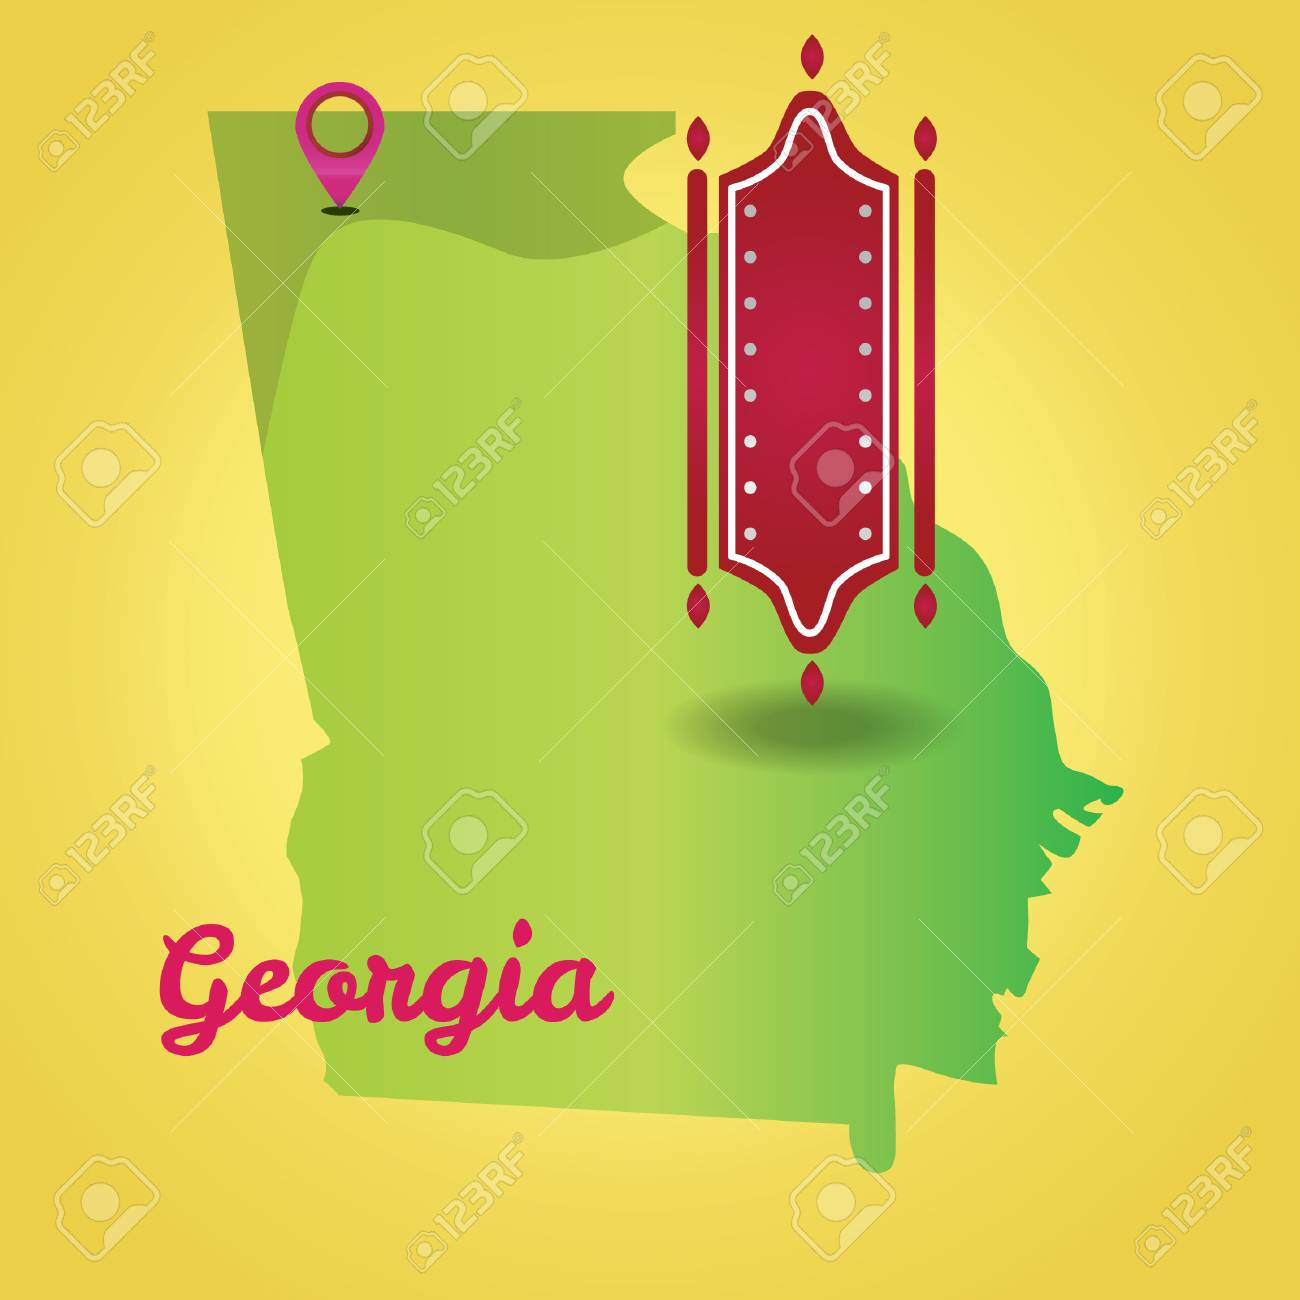 Map Of Georgia State Royalty Free Cliparts, Vectors, And Stock ...